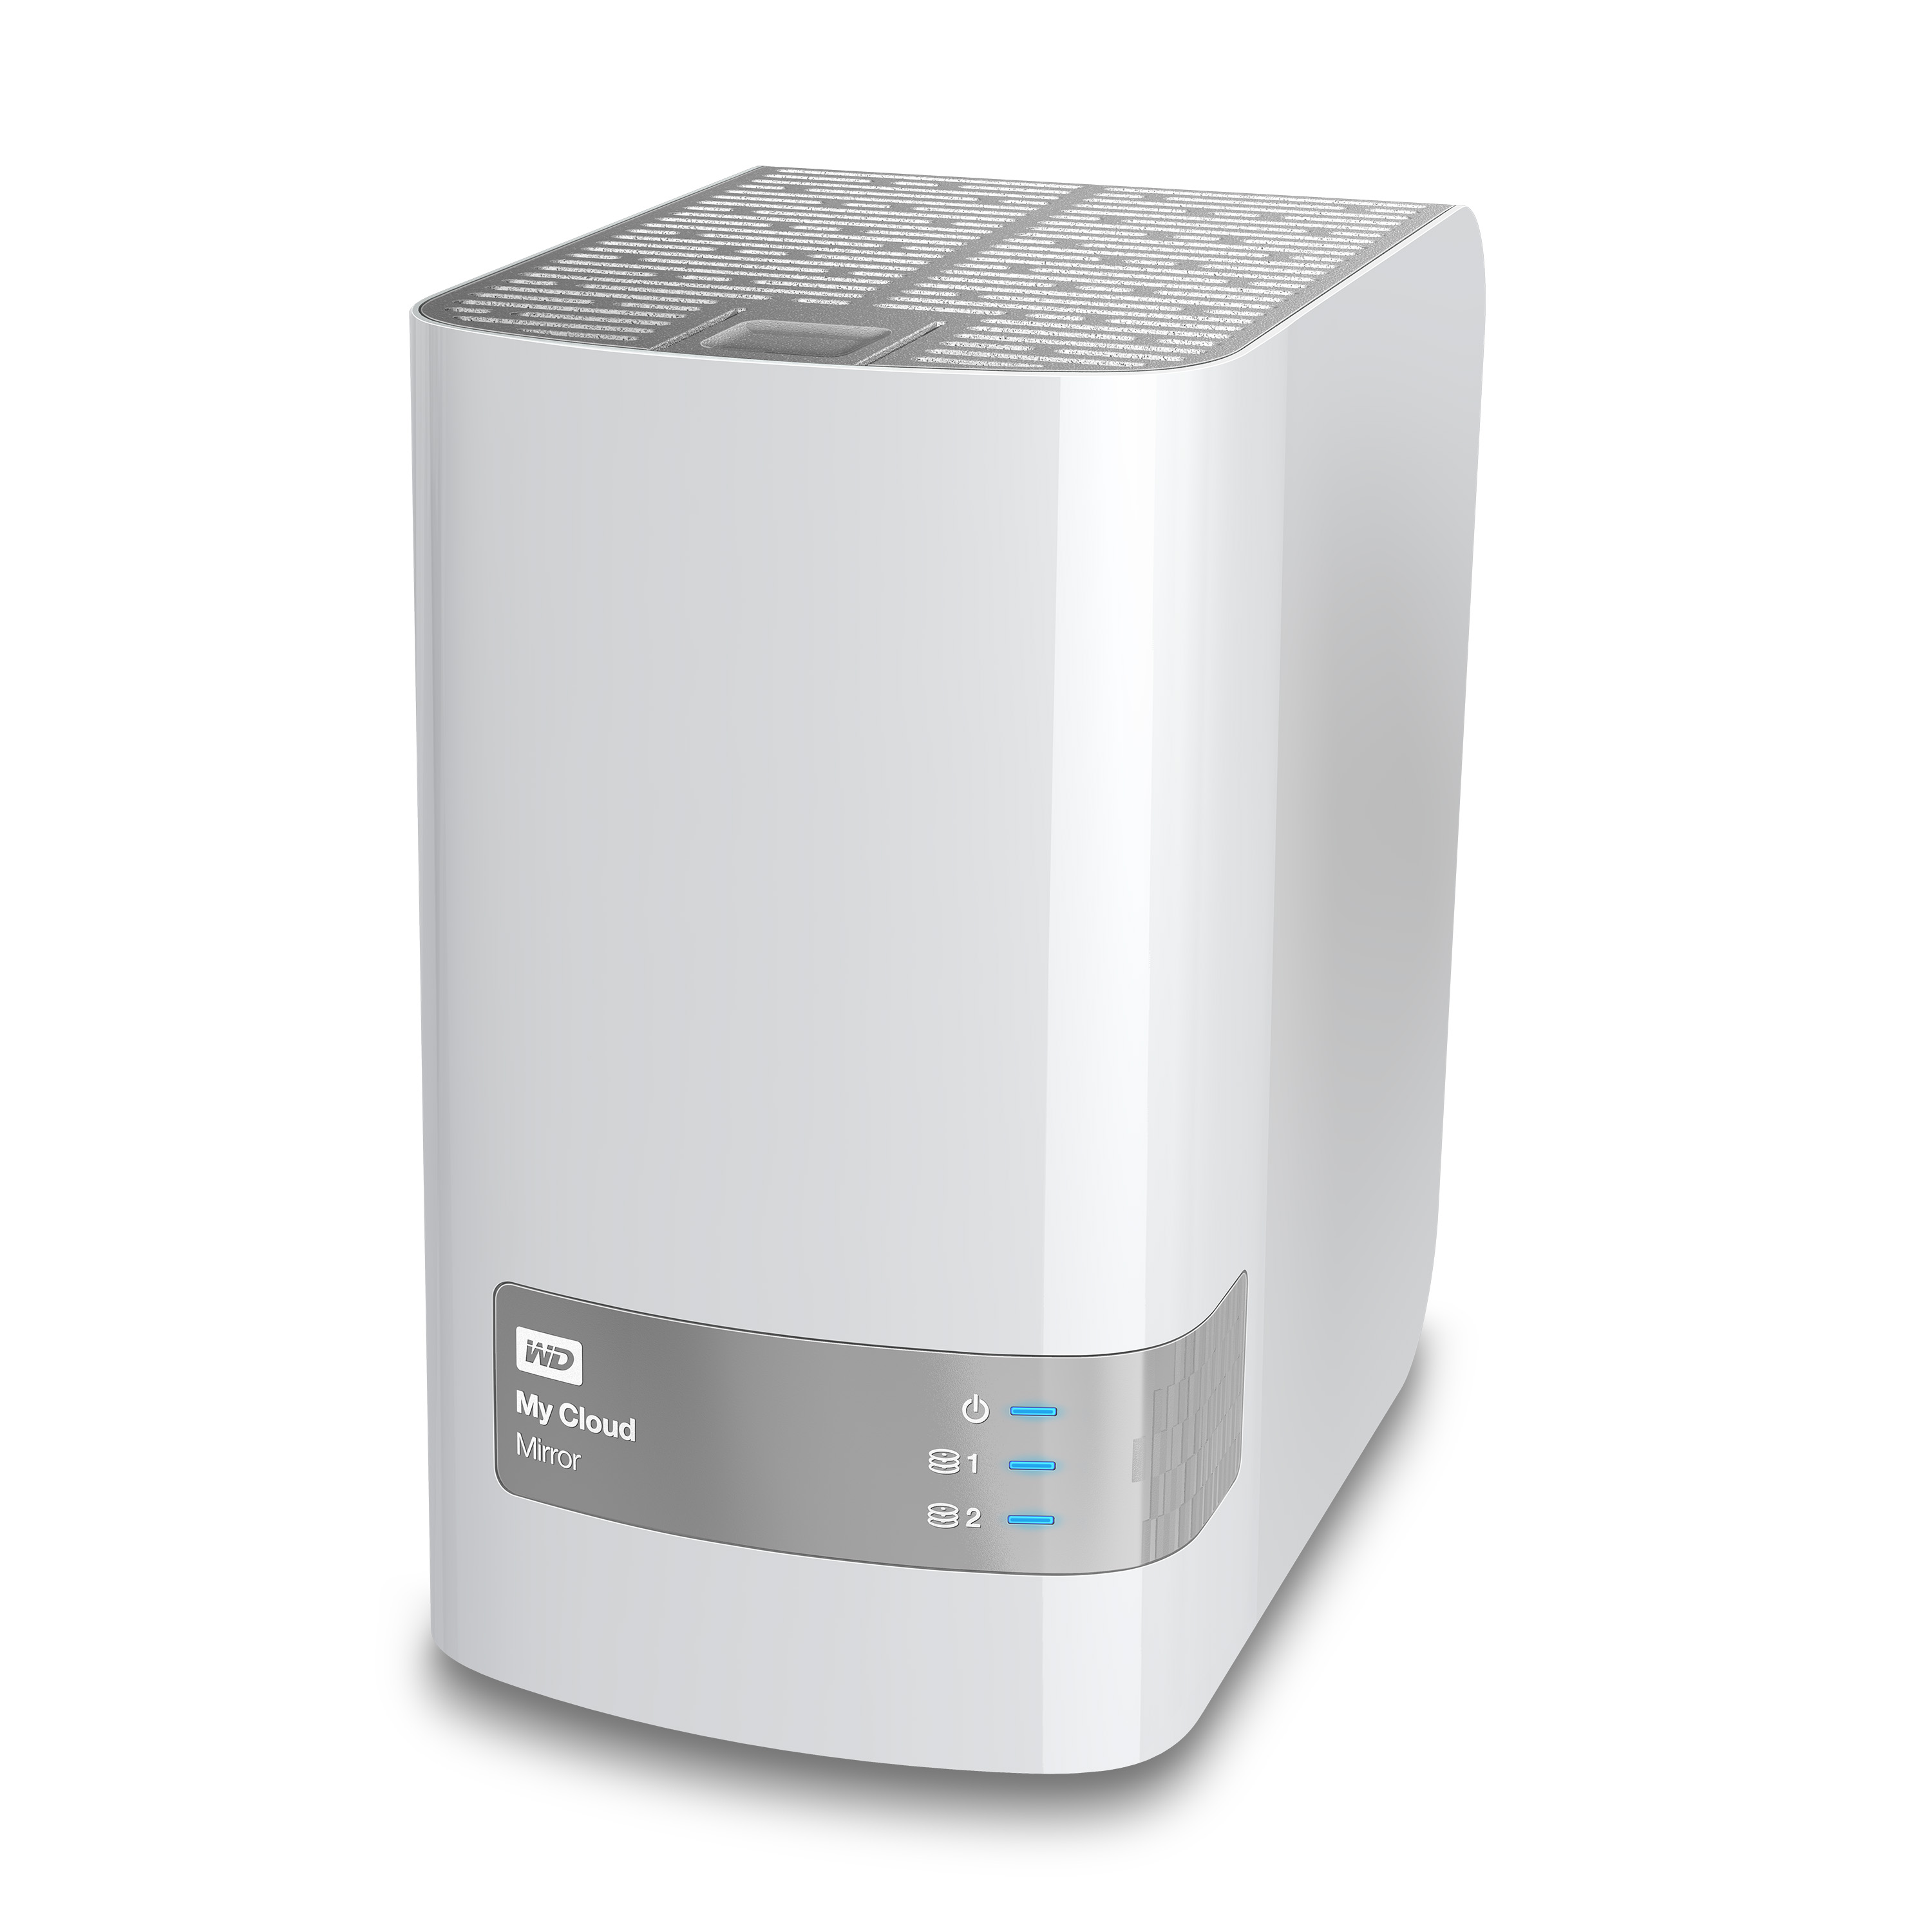 WD My Cloud 16TB (2x8TB) Mirror Personal Cloud Storage LAN RAID, USB 3.0